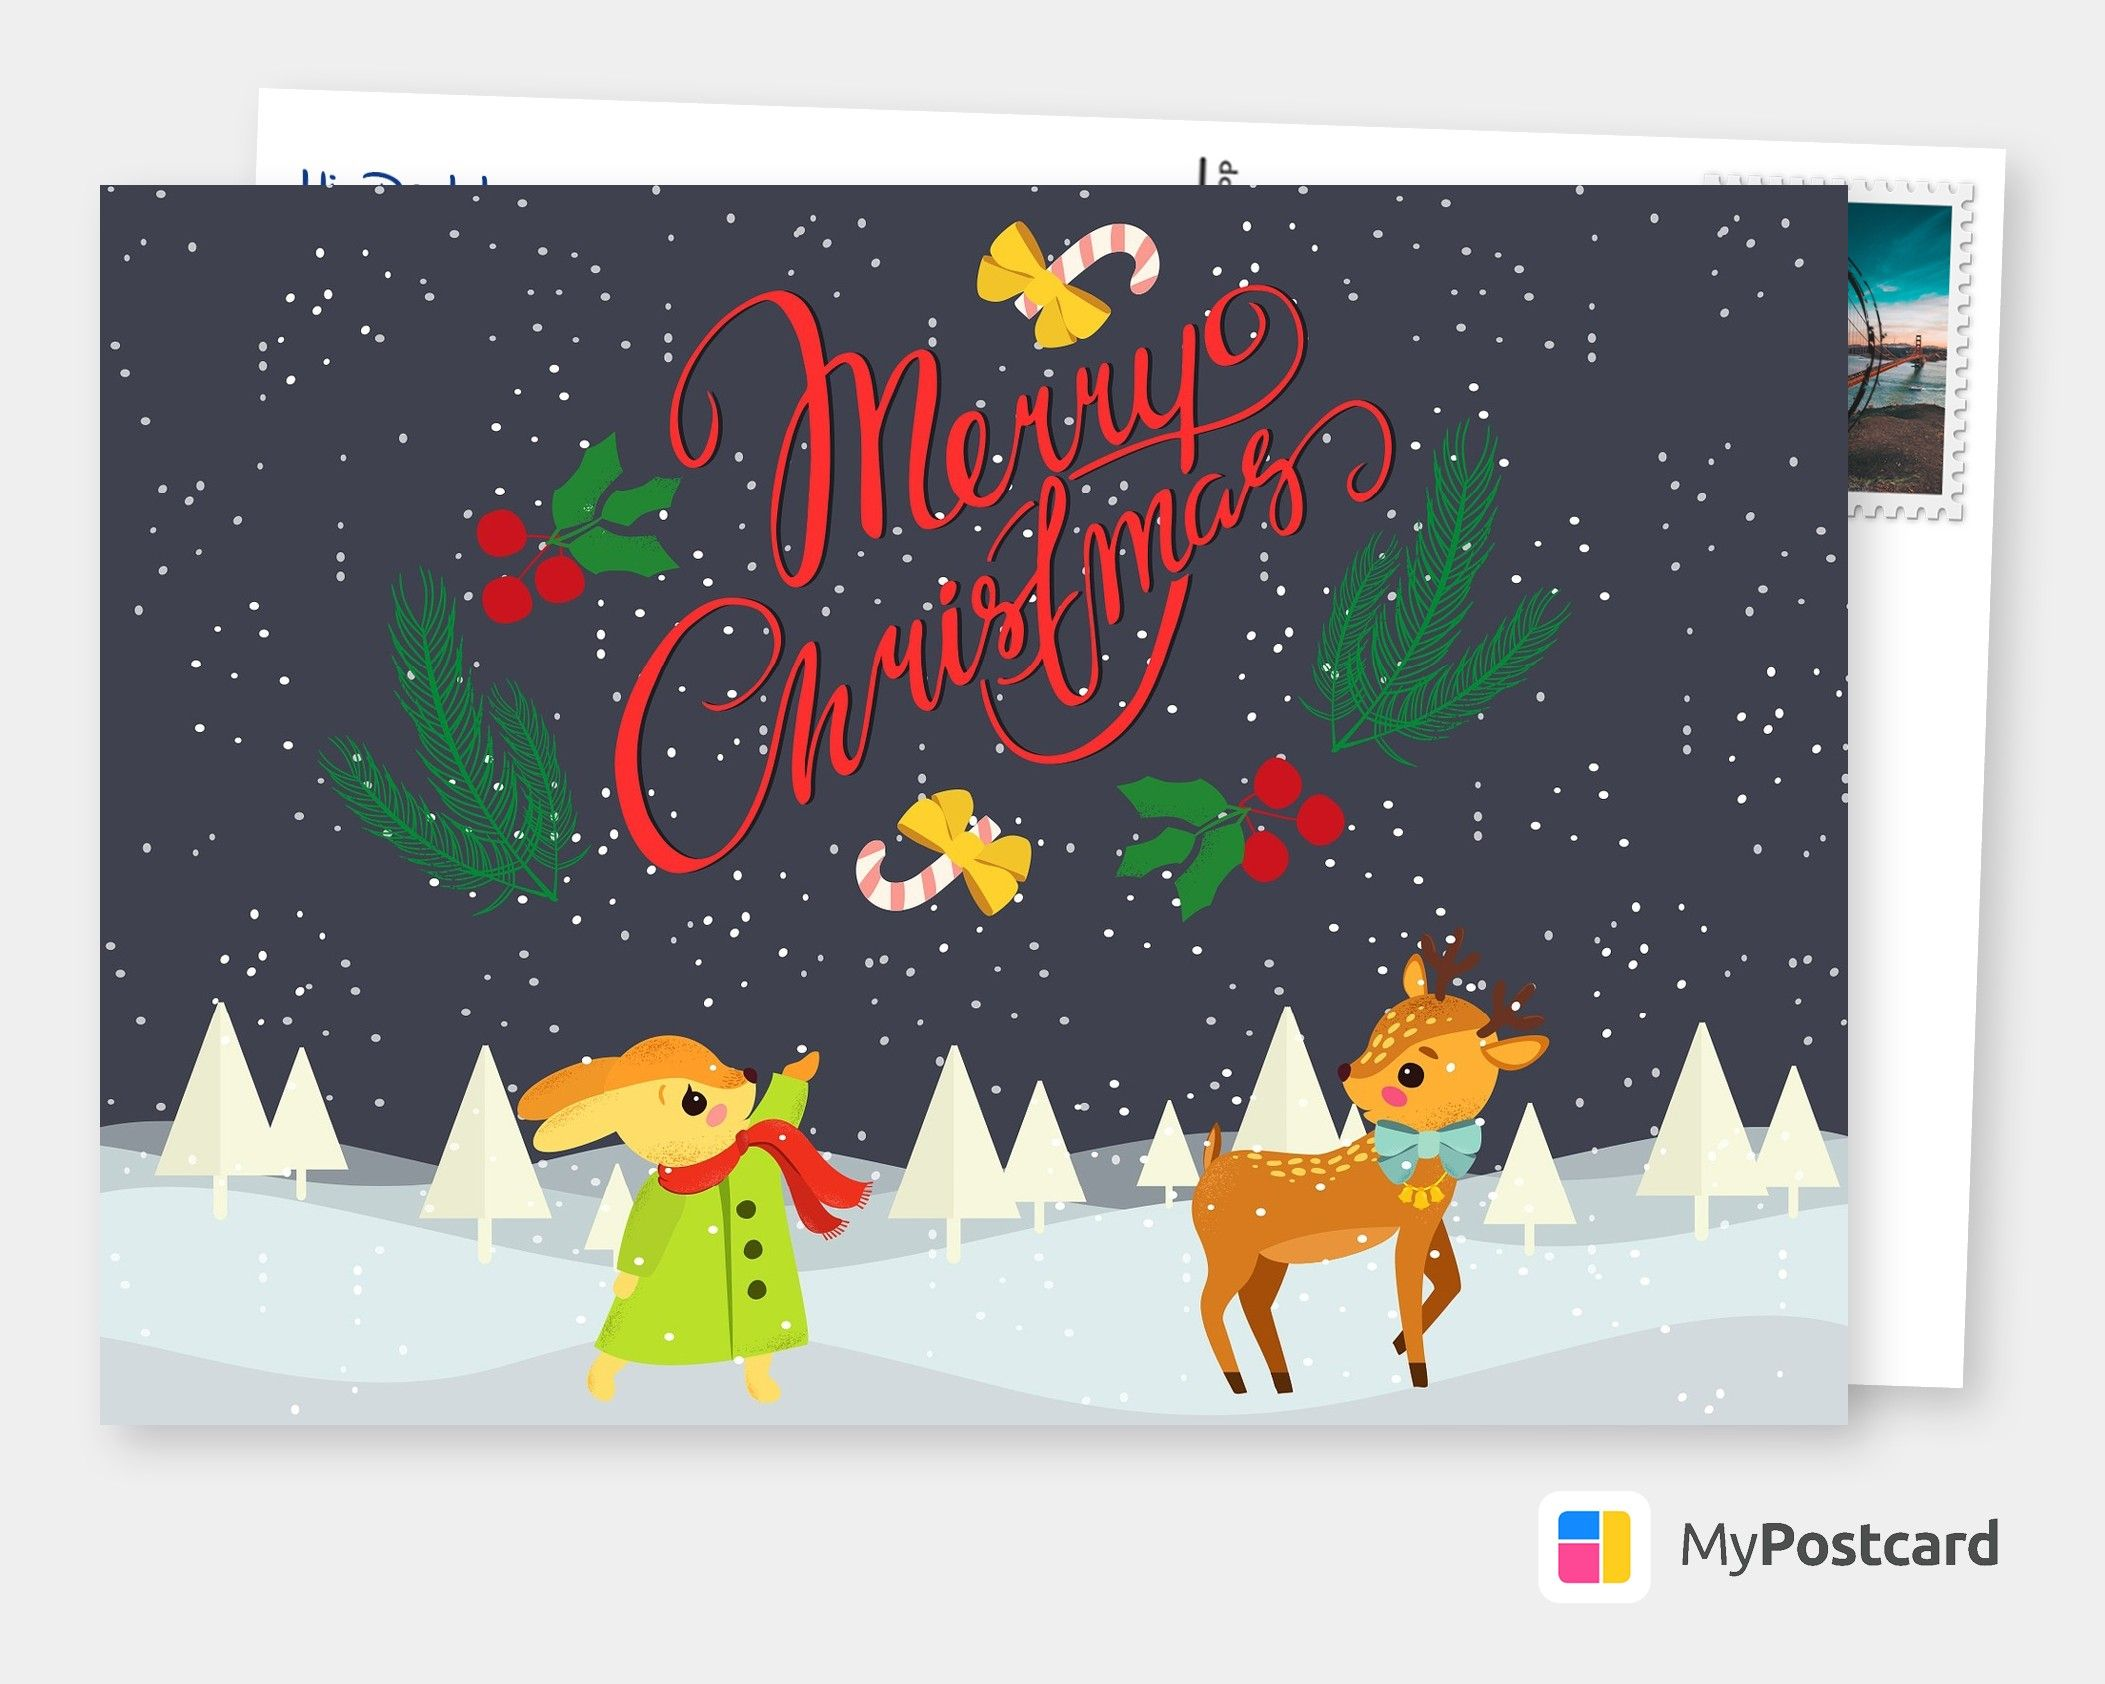 Merry Christmas Greetings / Merry Christmas Postcard / Merry Christmas Card Ideas / Merry Christmas